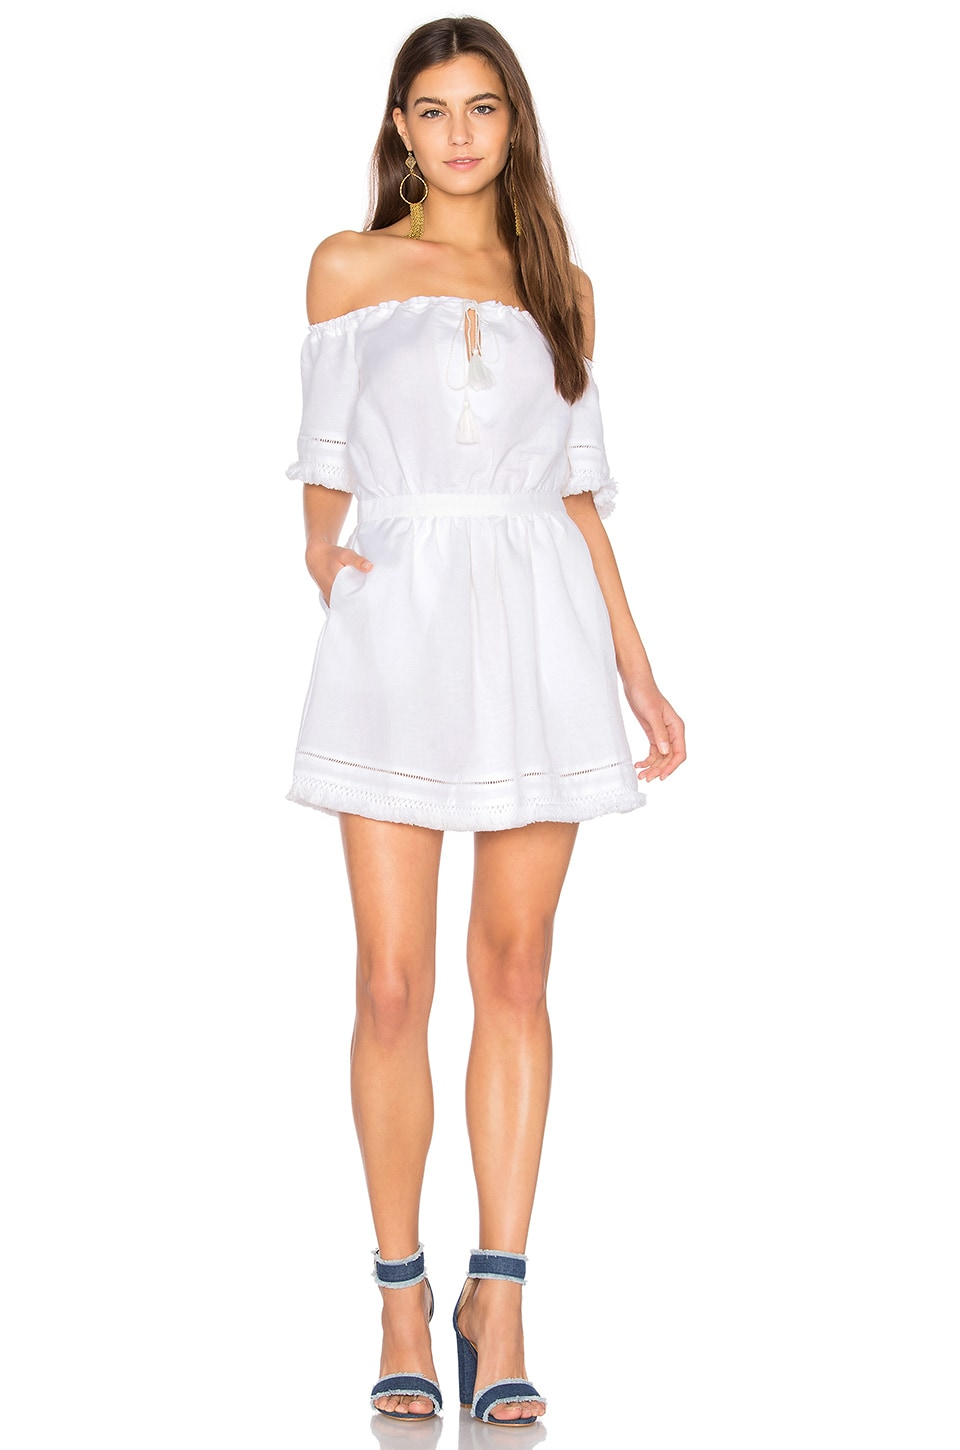 THE JETSET DIARIES Turismo Mini Dress in Ivory